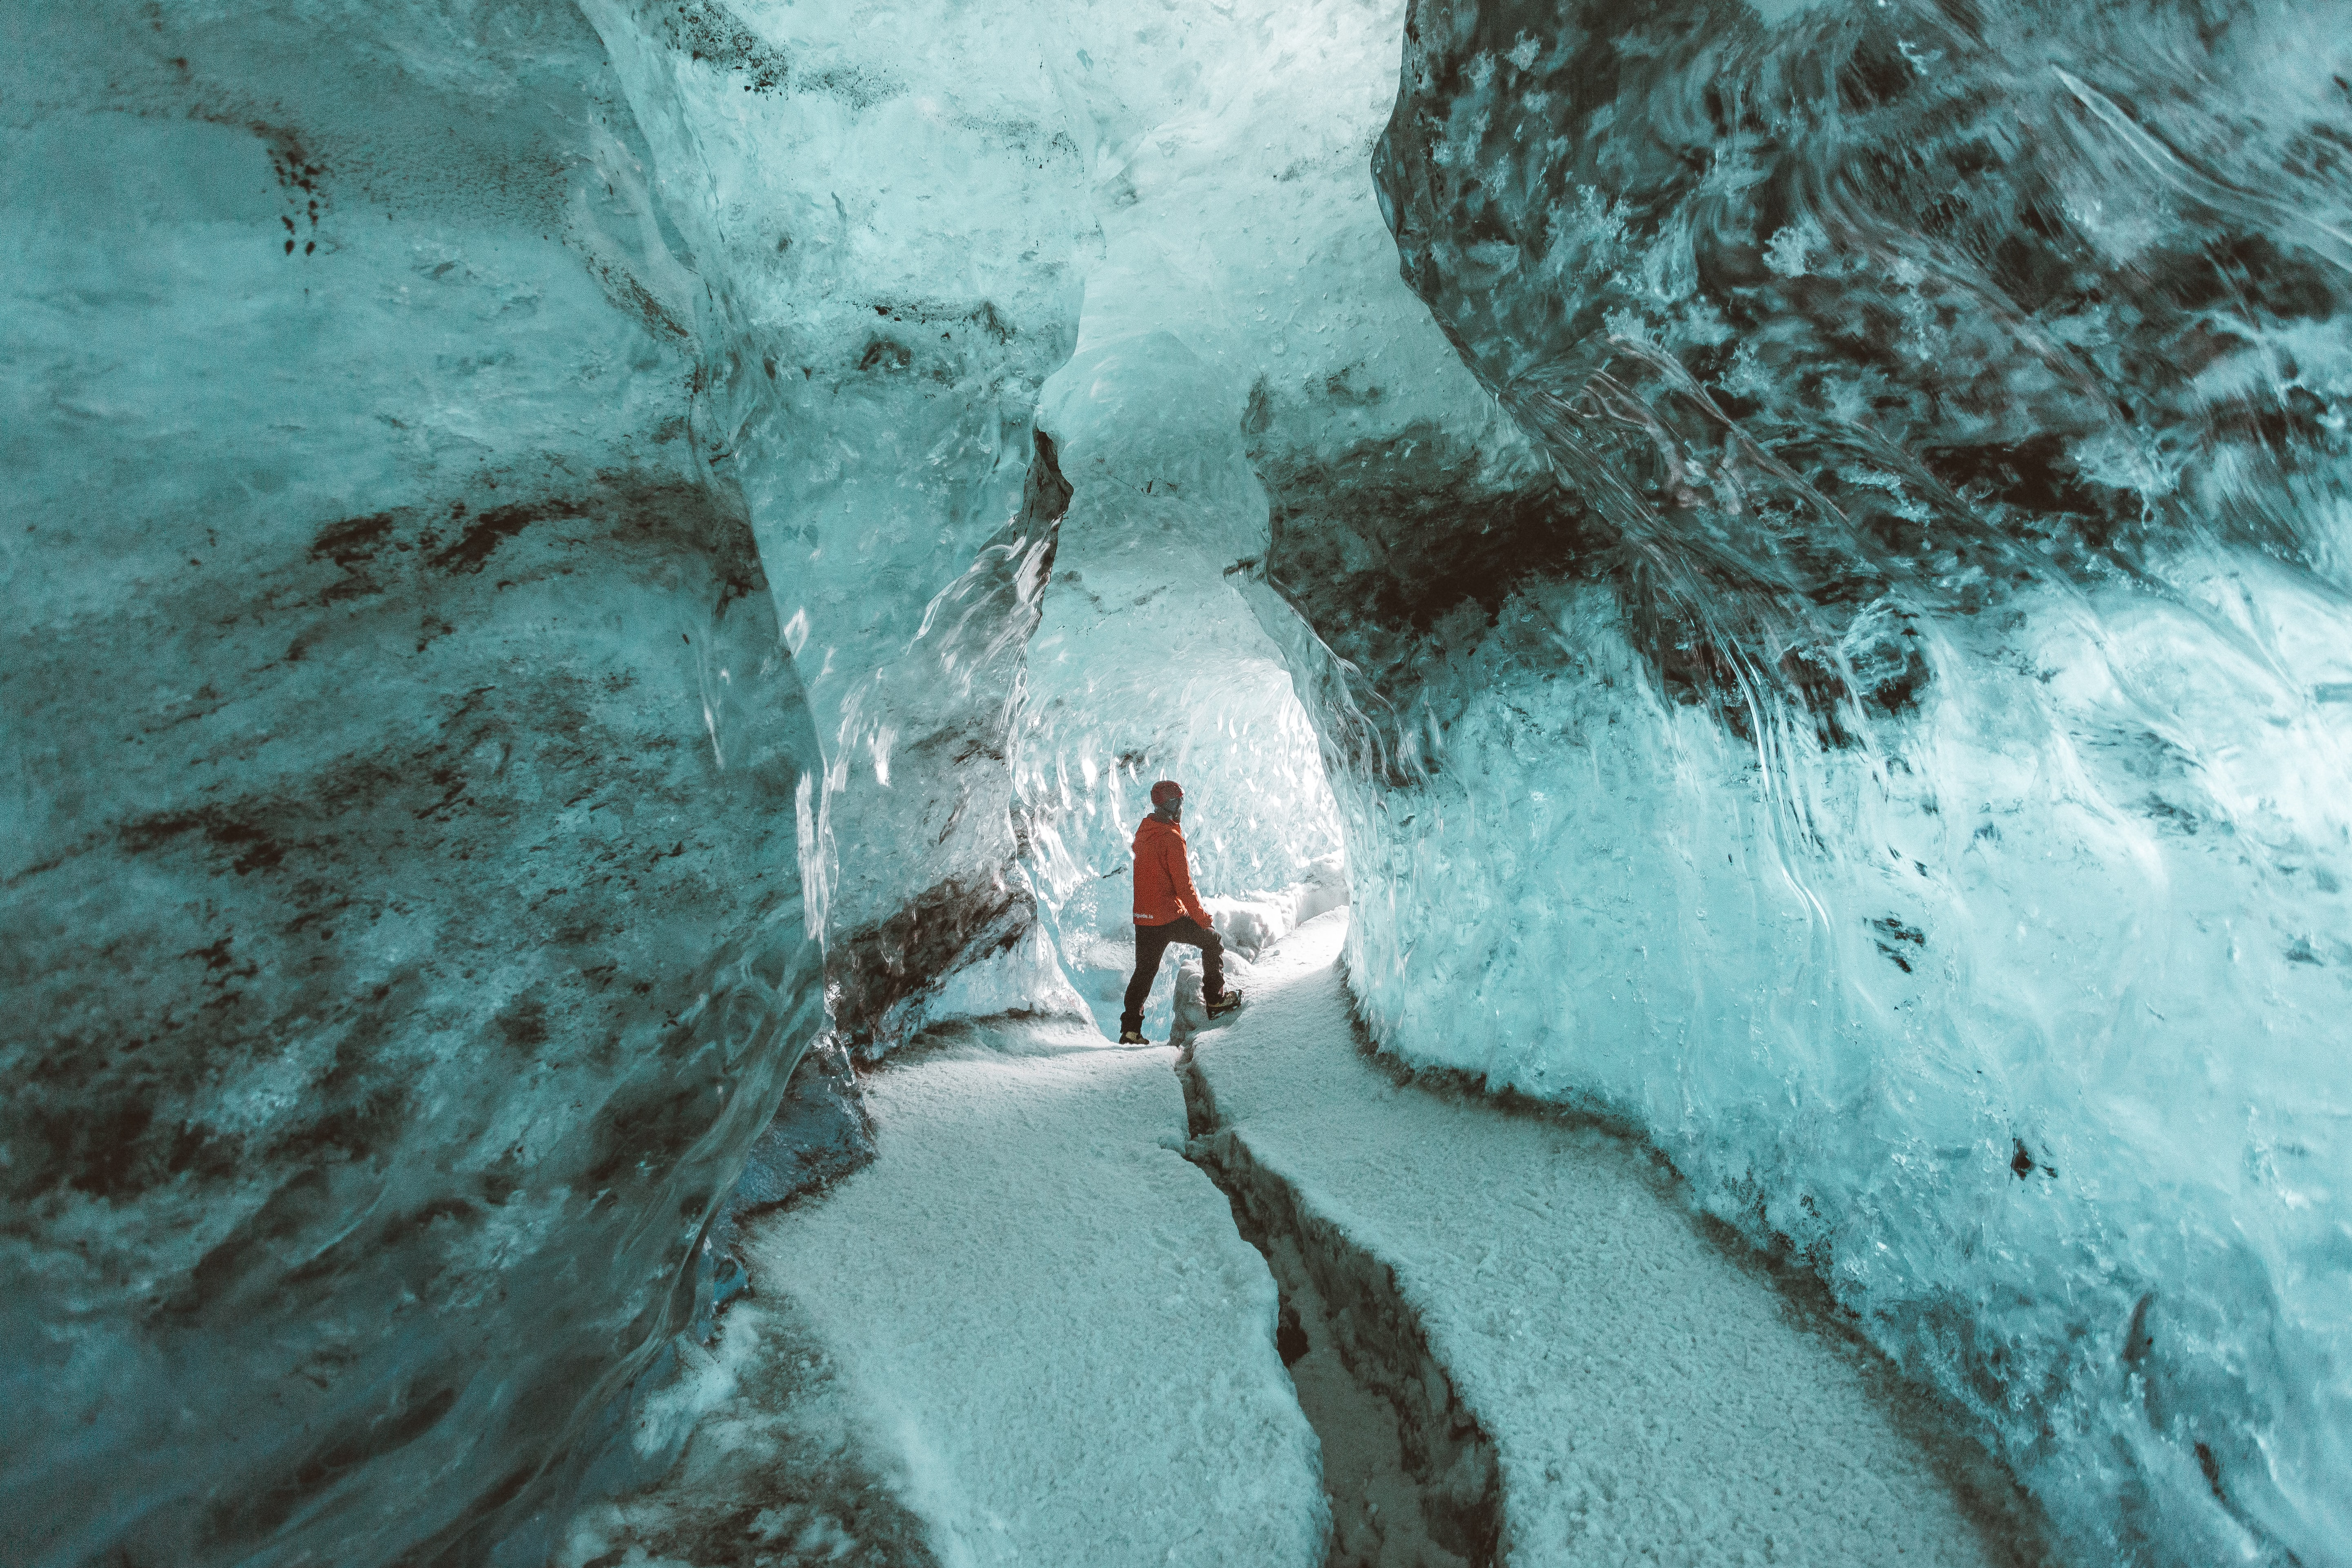 The Langjokull Ice Cave, Ice caves in Iceland